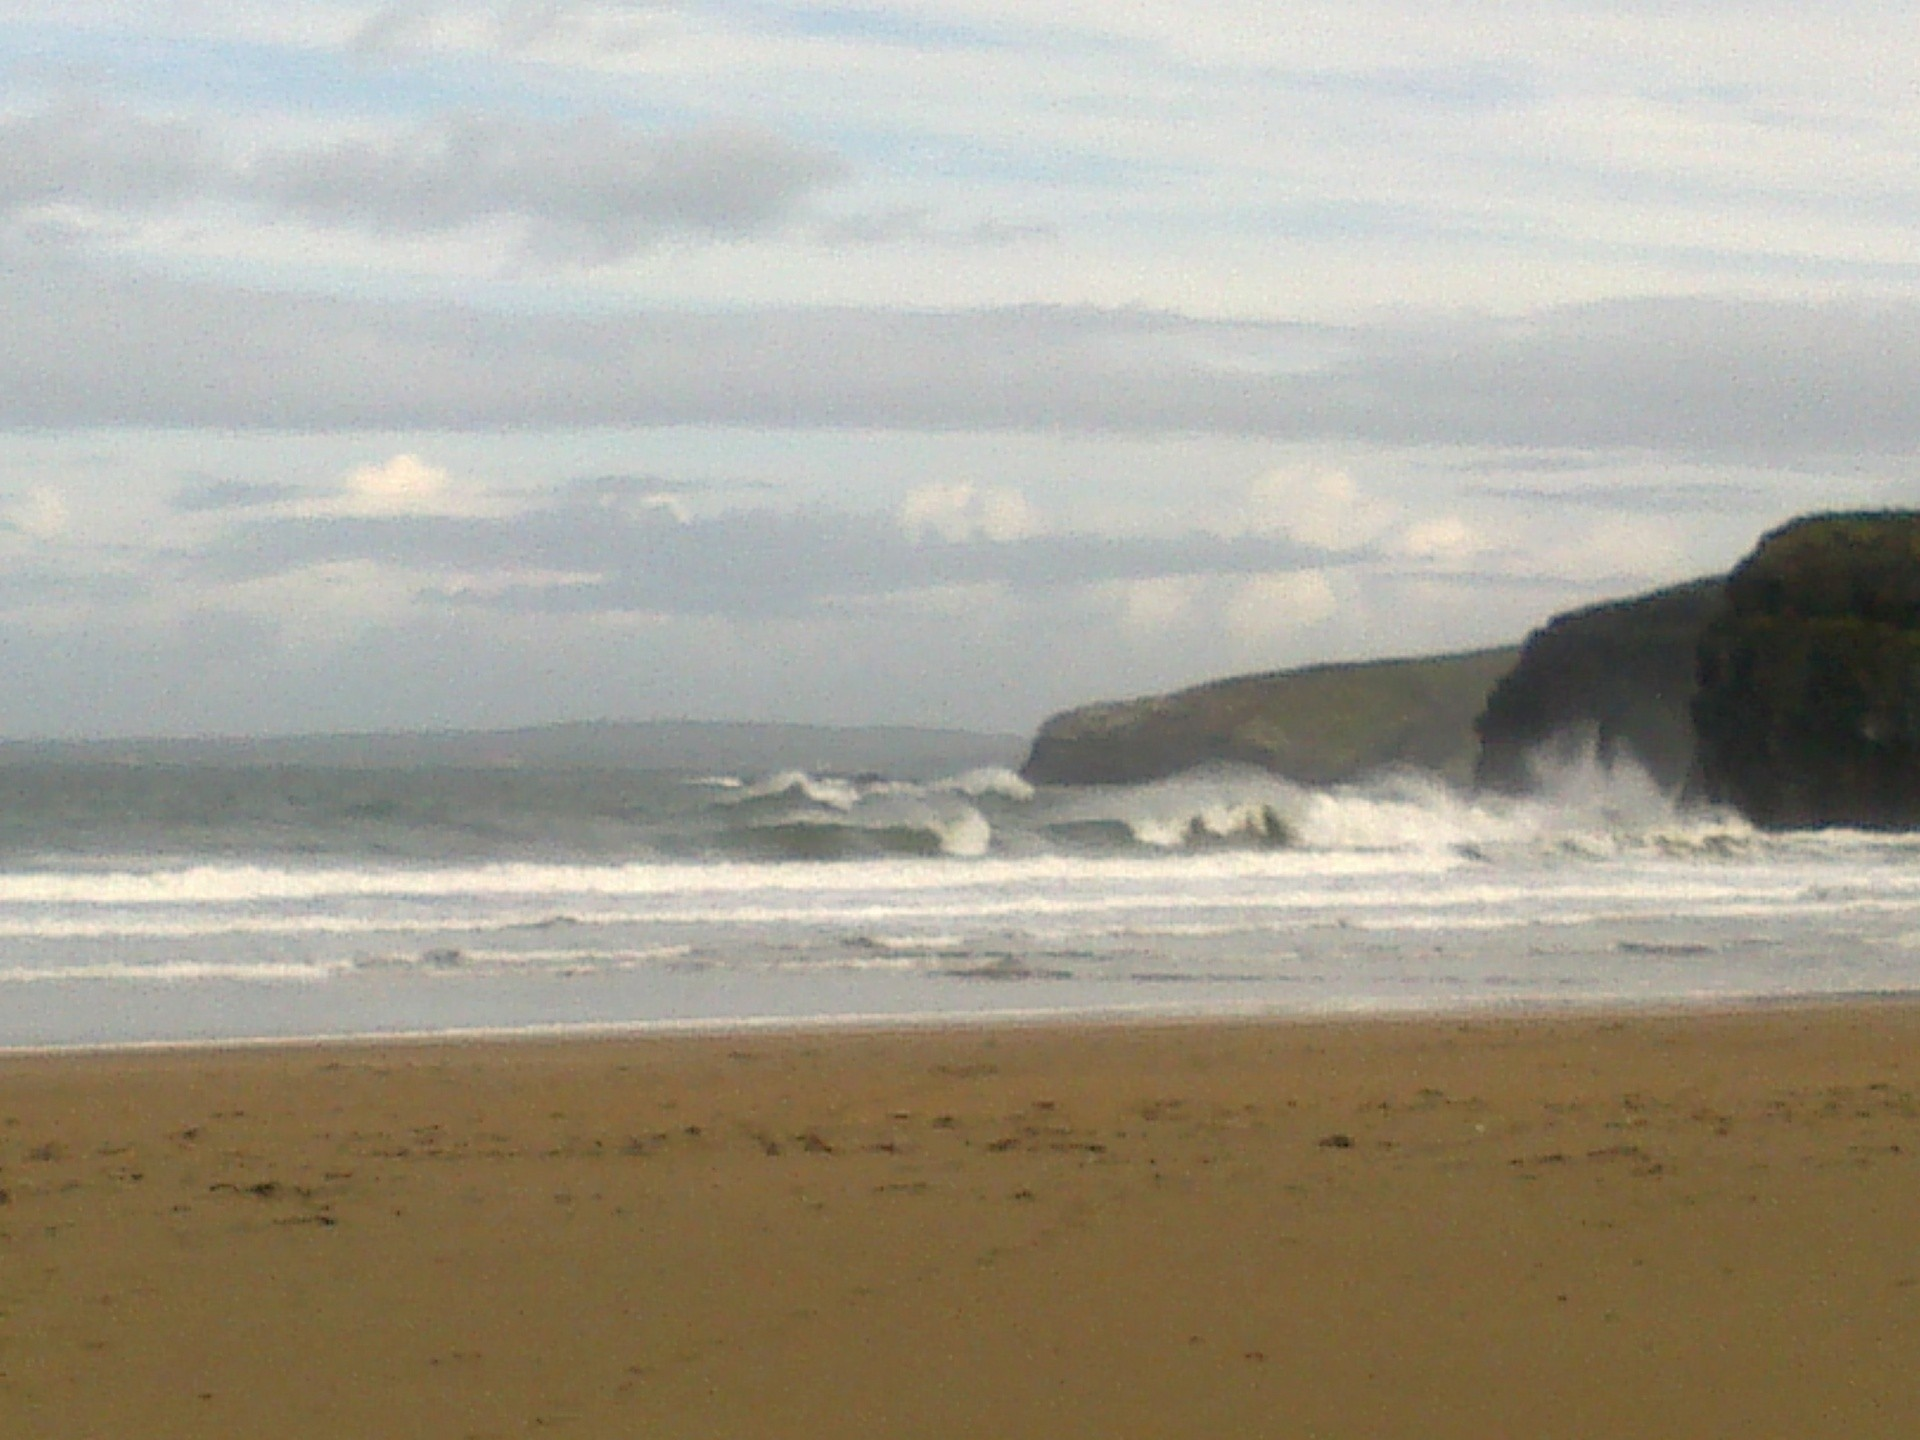 marko2's photo of Ballybunion